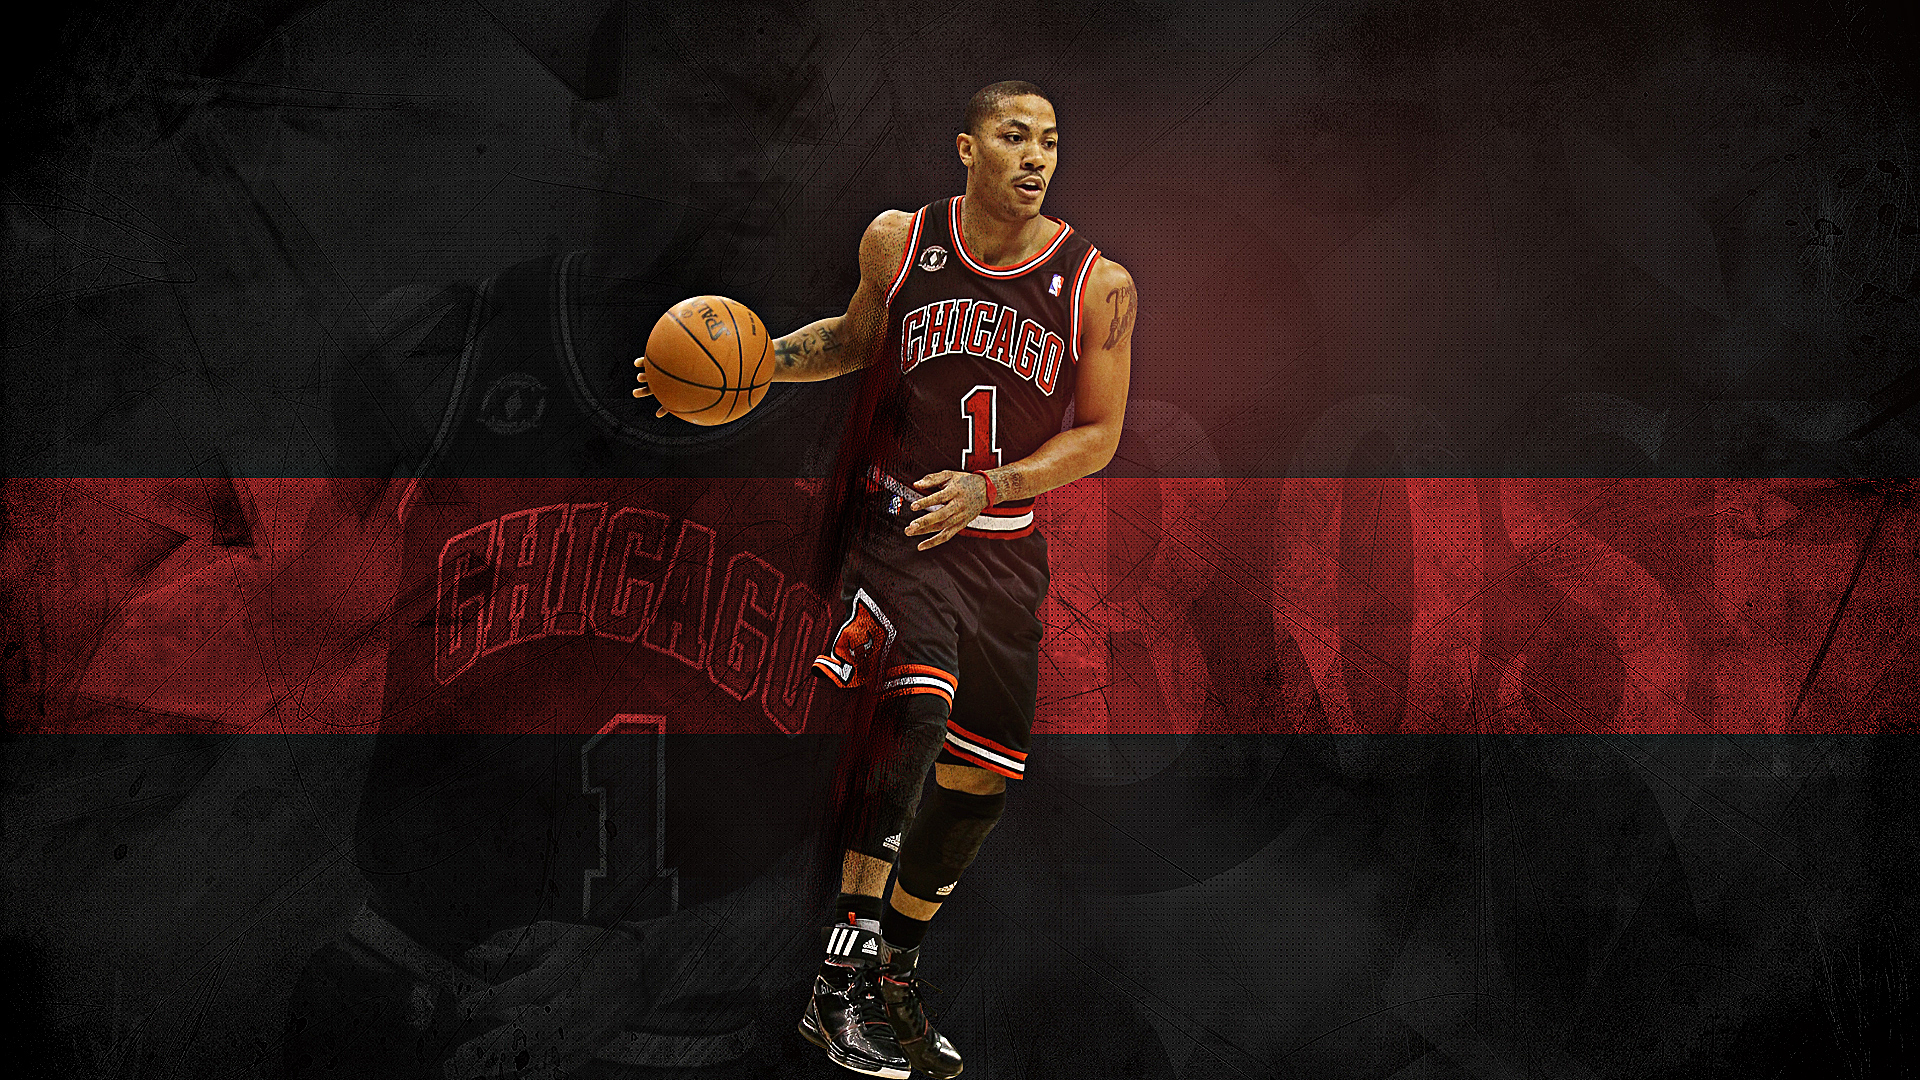 Derrick Rose Wallpapers High Resolution and Quality Download 1920x1080